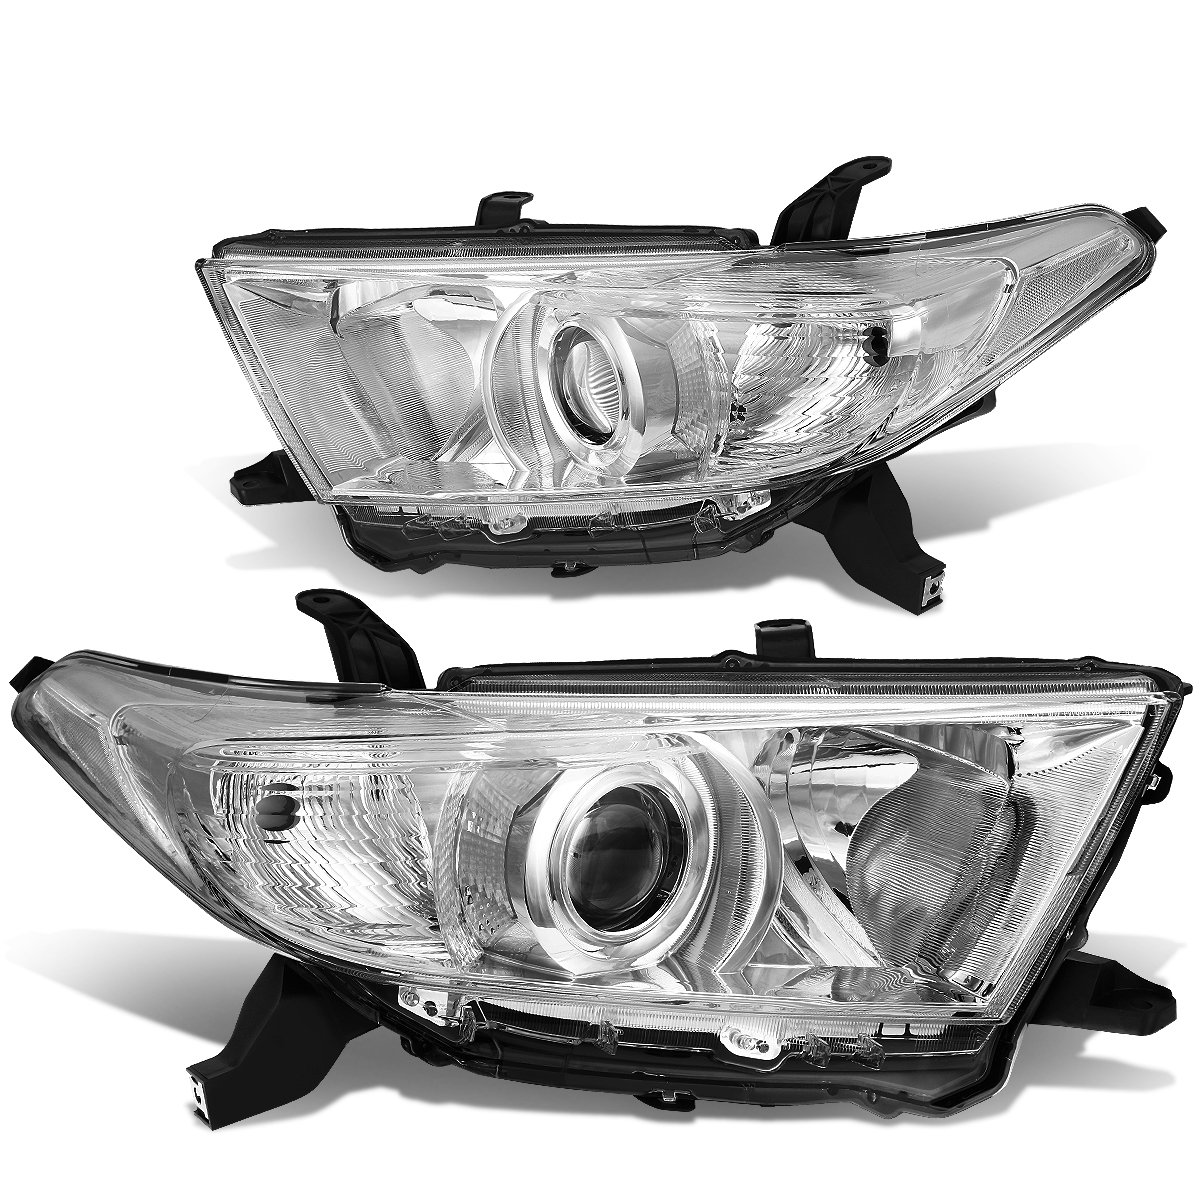 DNA Motoring HL-OH-THI11-CH-CL1 Projector Headlight Driver /& Passenger Side